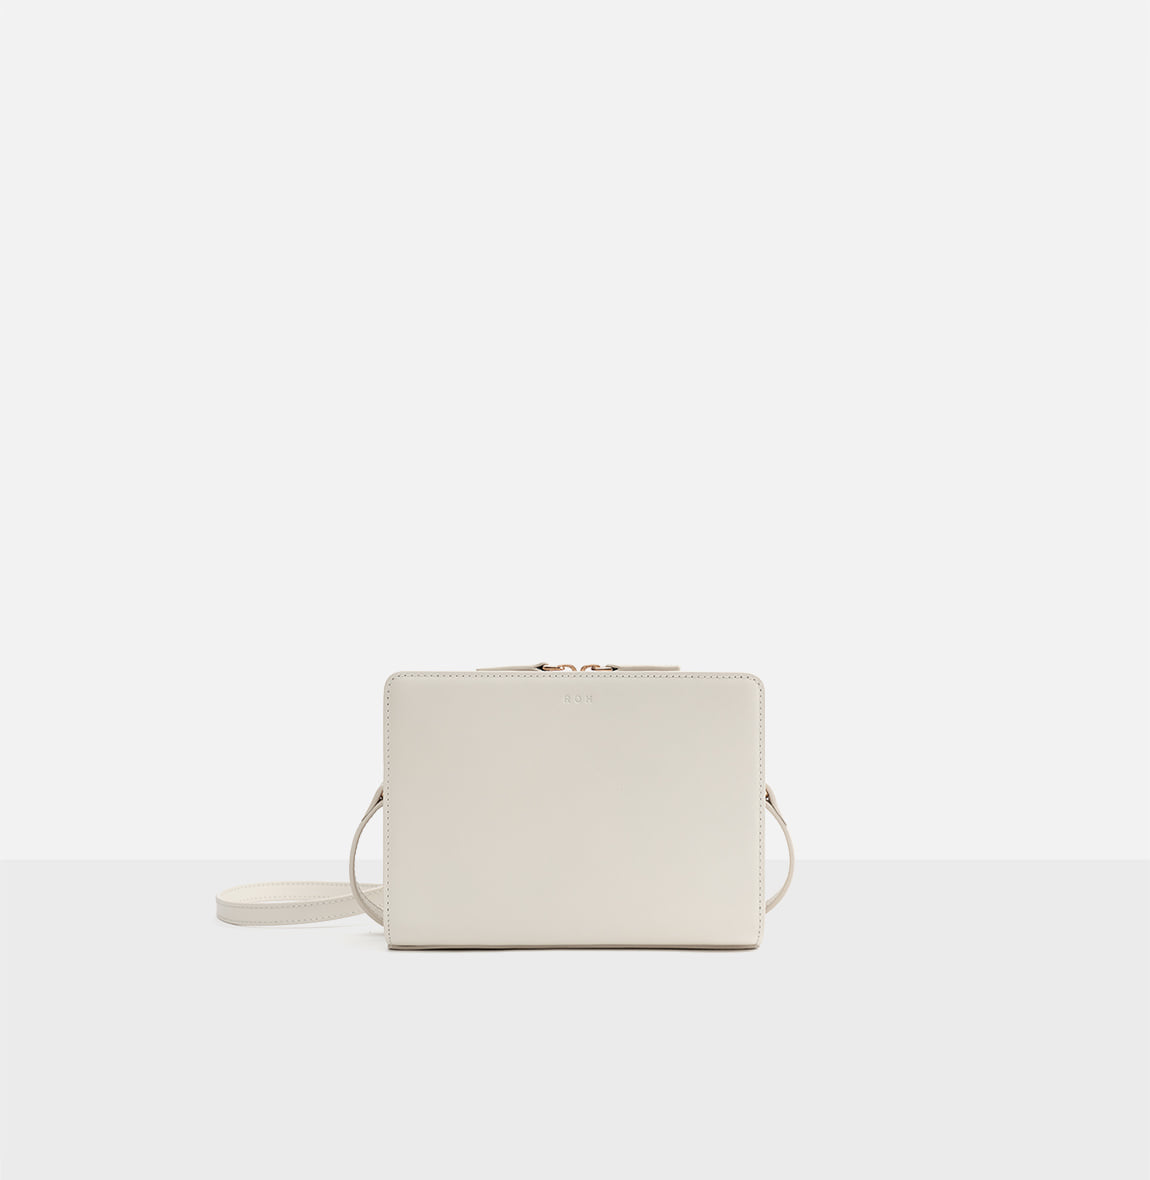 ROH Mini square bag Ivory